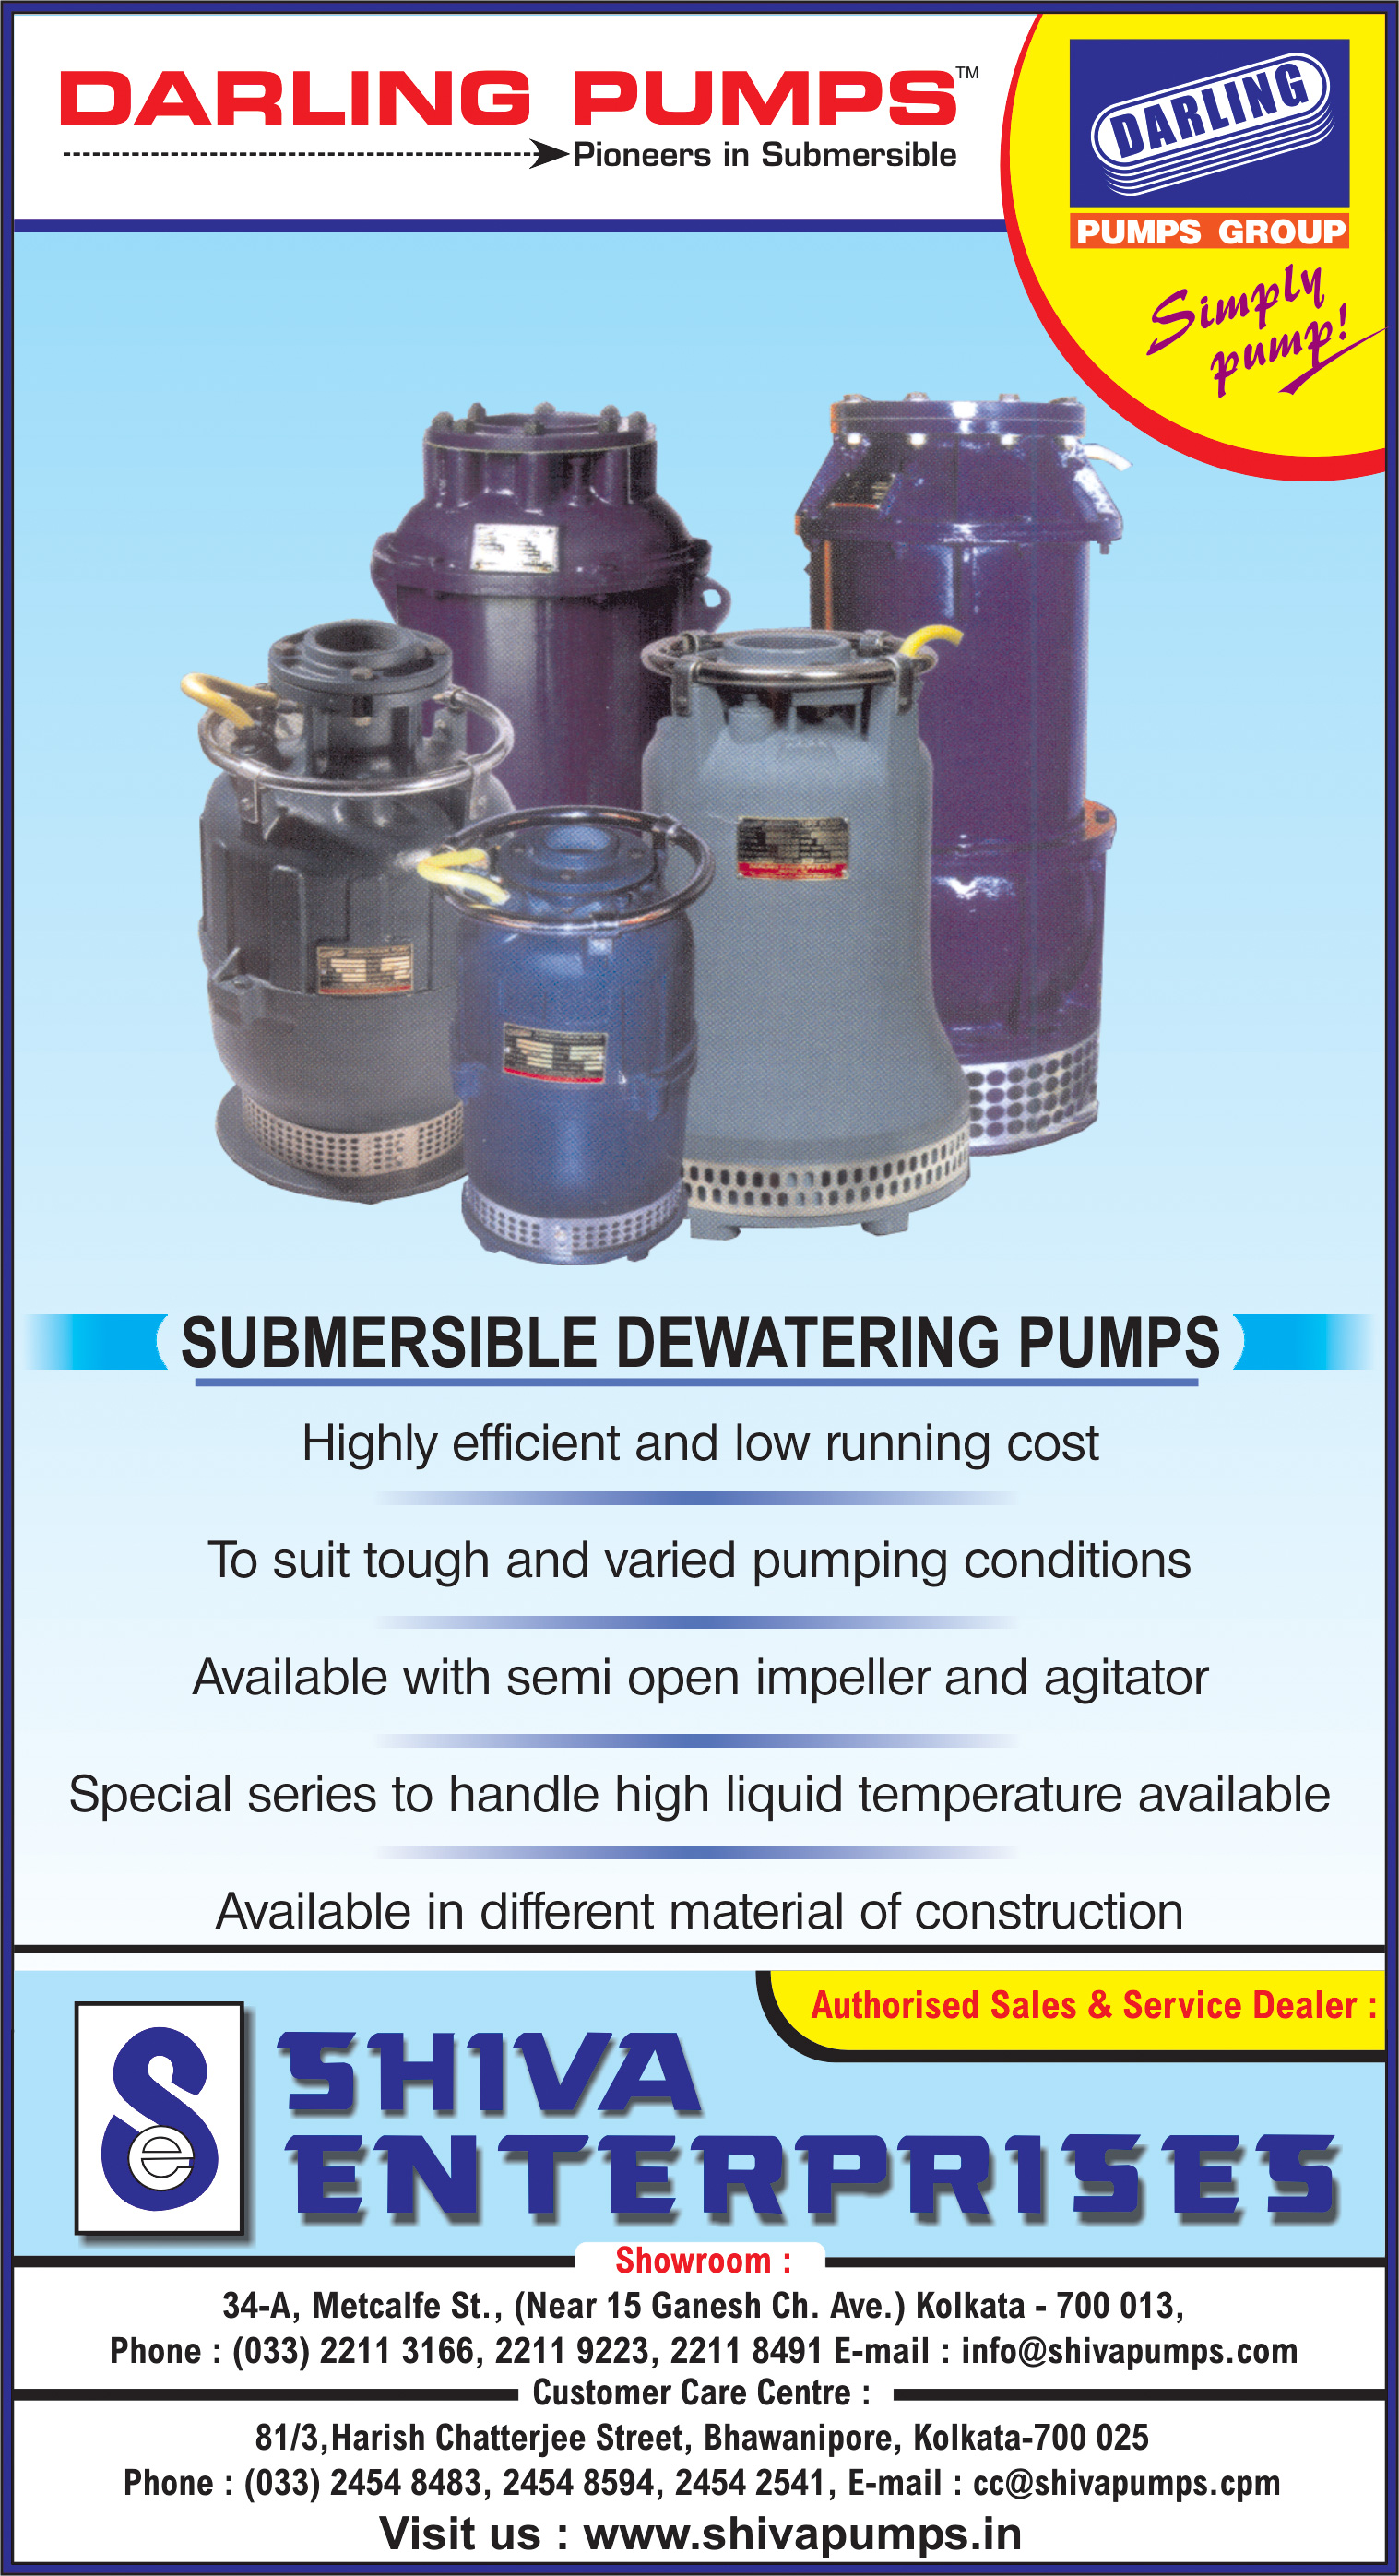 SHIVA ENTERPRISES Pumps Submersible Kolkata Yellow Pages Kolkata West Bengal